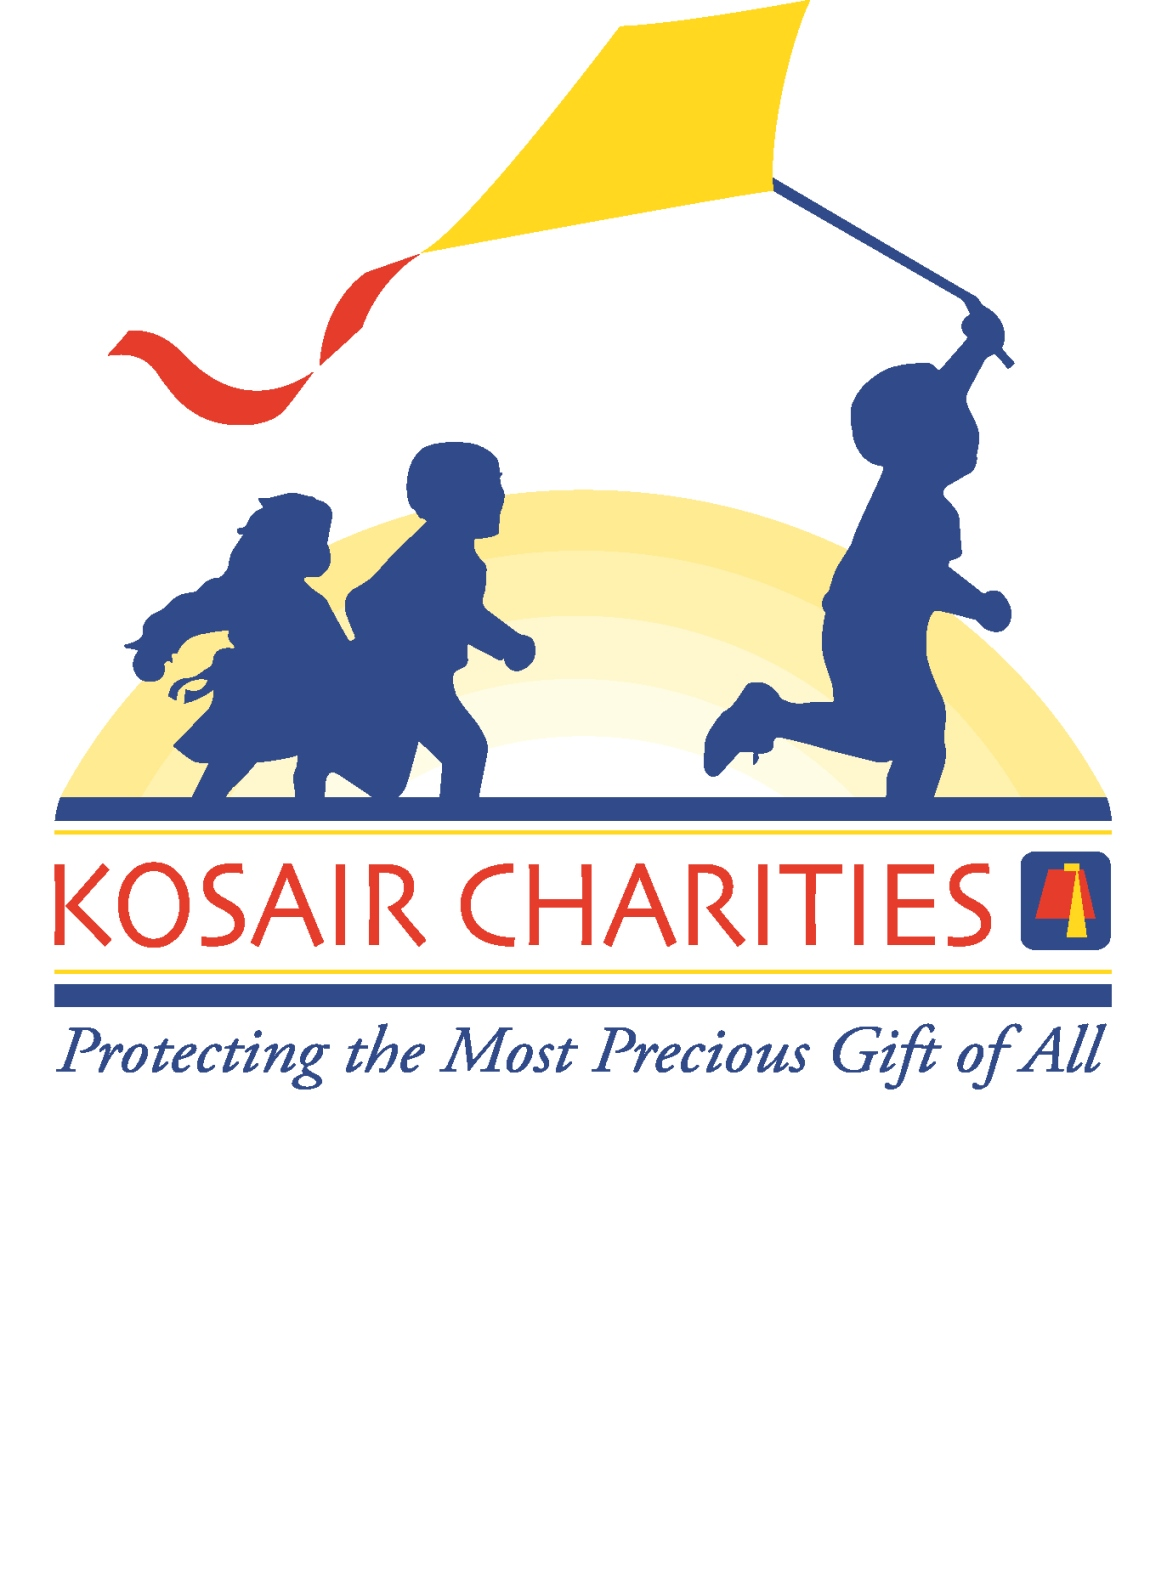 Kosair Charities logo.jpg